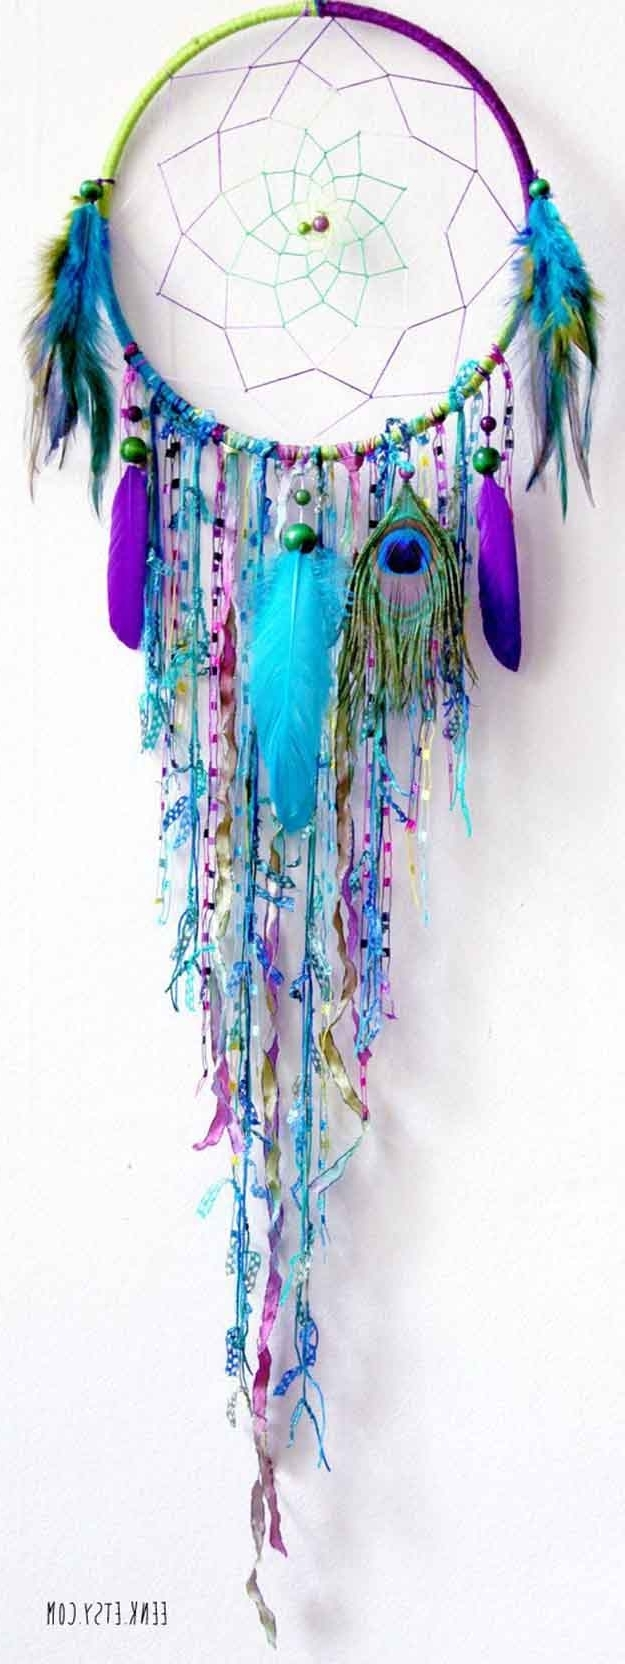 Most Current Beautiful Diy Dreamcatcher Ideas For Keeping Nightmares Away Regarding Dreamcatcher Fabric Wall Art (View 7 of 15)